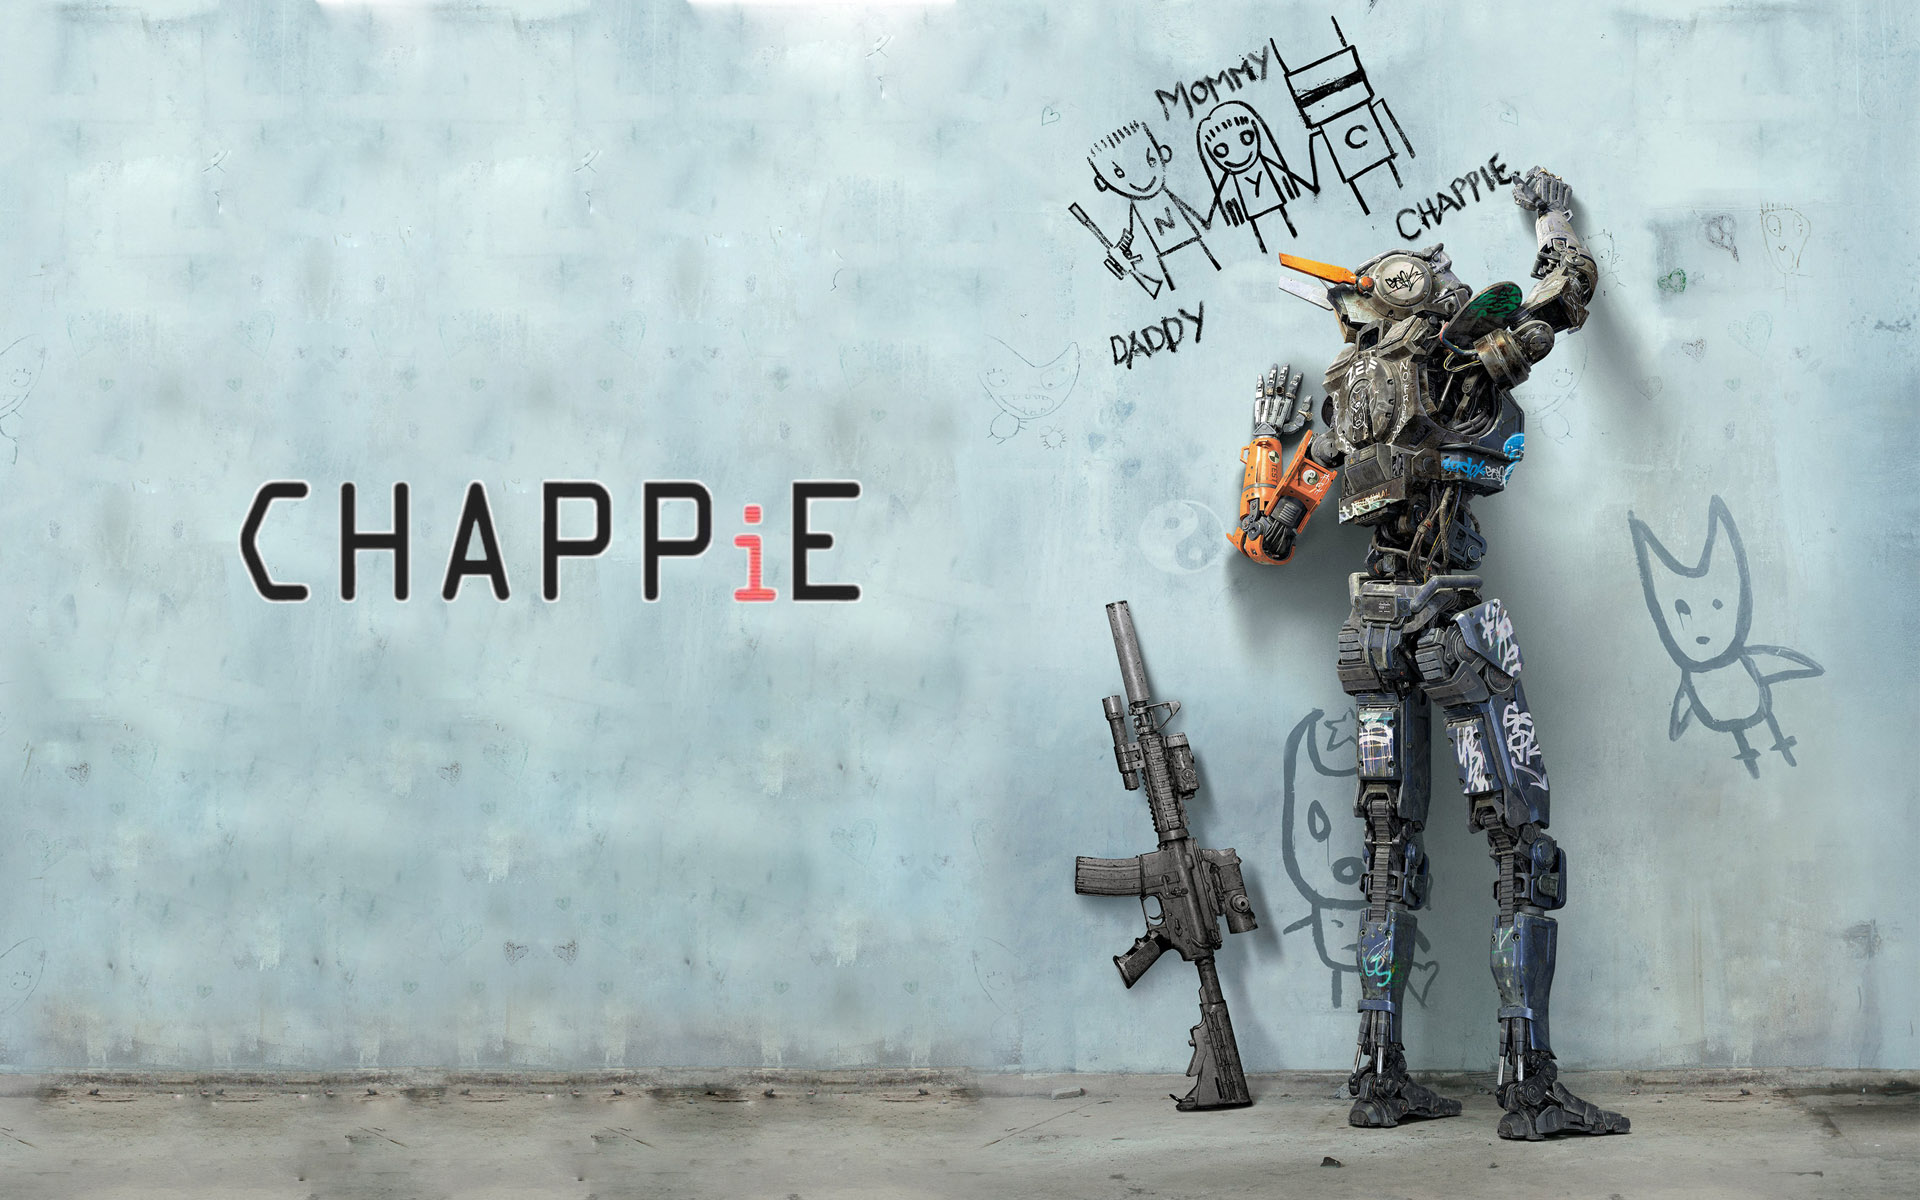 review chappie 171 the movie evangelist